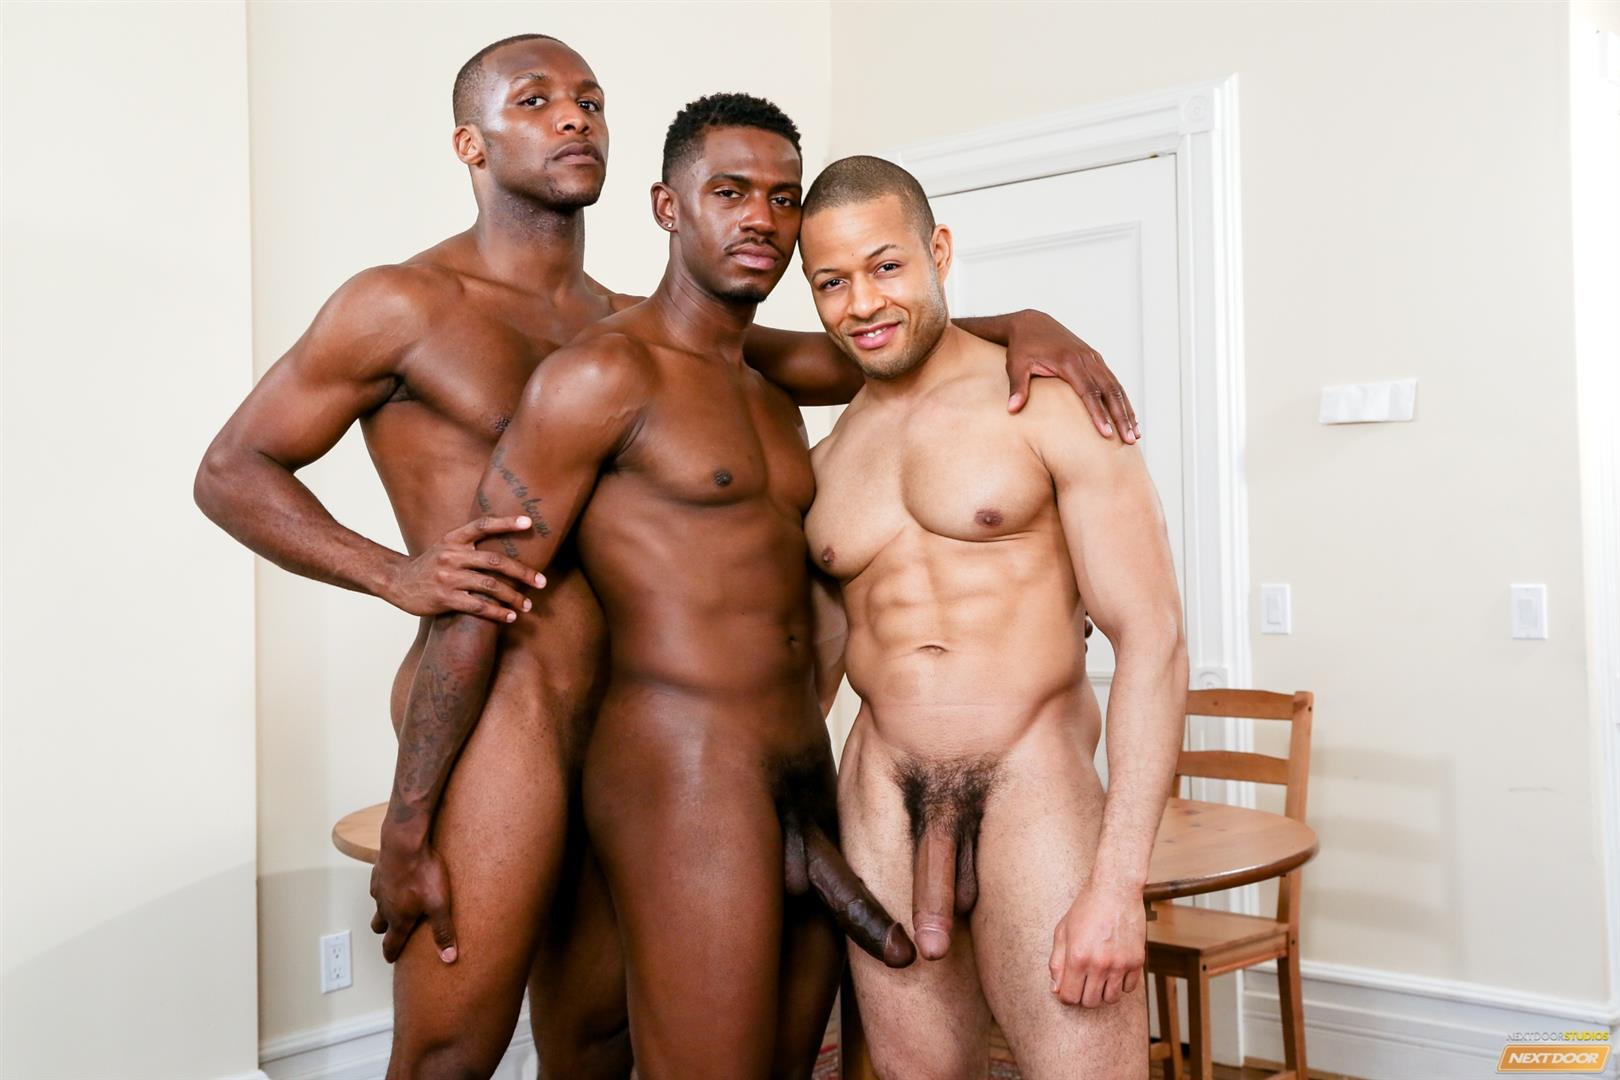 Next-Door-Ebony-Krave-Moore-and-Andre-Donovan-and-Rex-Cobra-Big-Black-Cock-Amateur-Gay-Porn-07 Three Black Guys Playing Strip Dominoes With Their Big Black Cocks